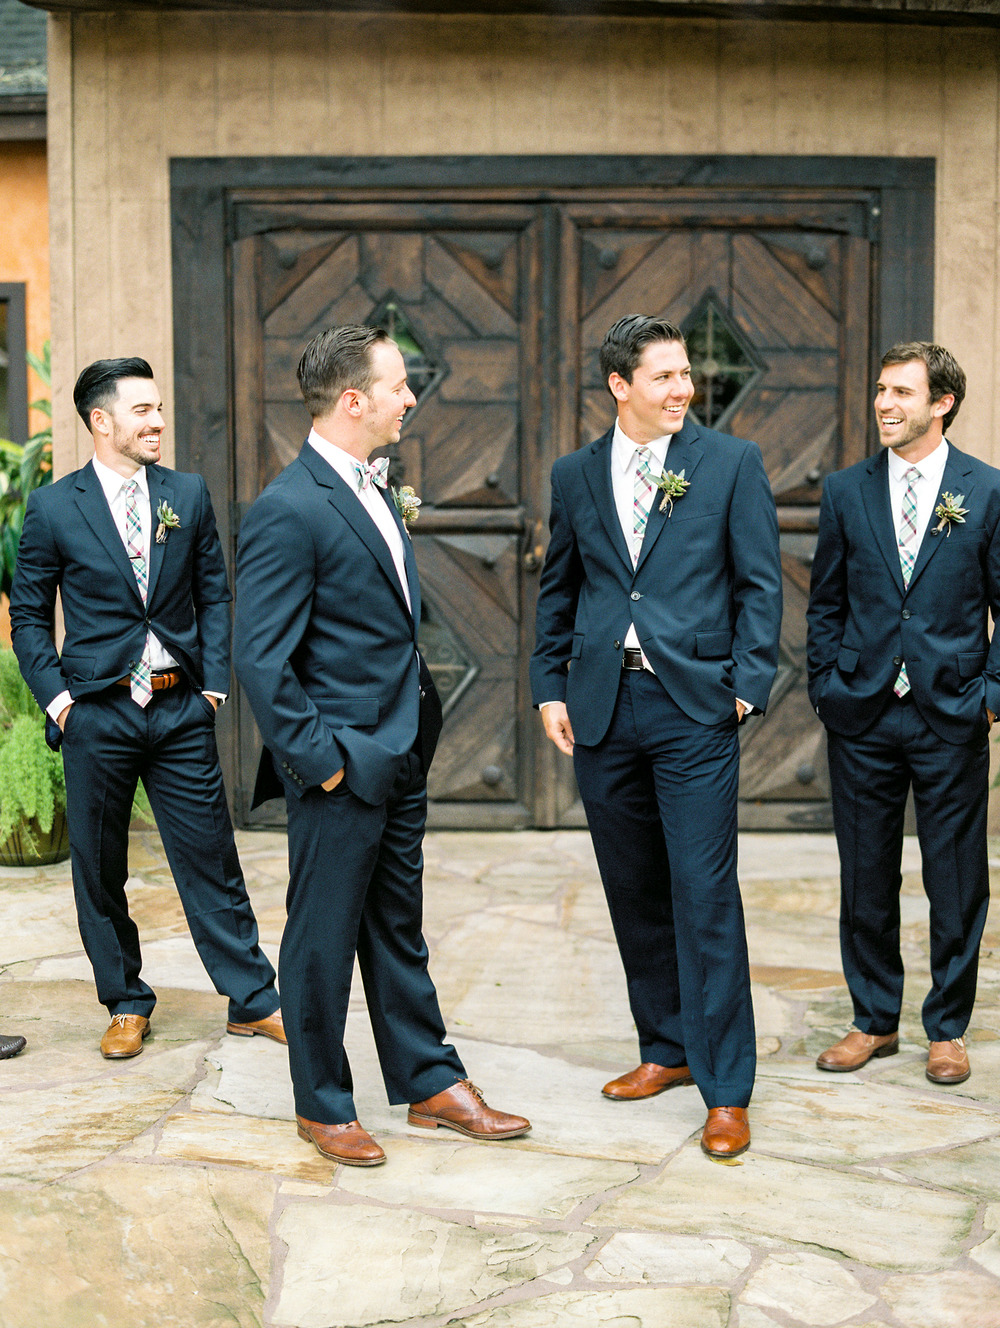 Dana Fernandez Photography Agave Road Agave Estates Houston Texas Wedding Photographer Destination Southwest Film-27.jpg